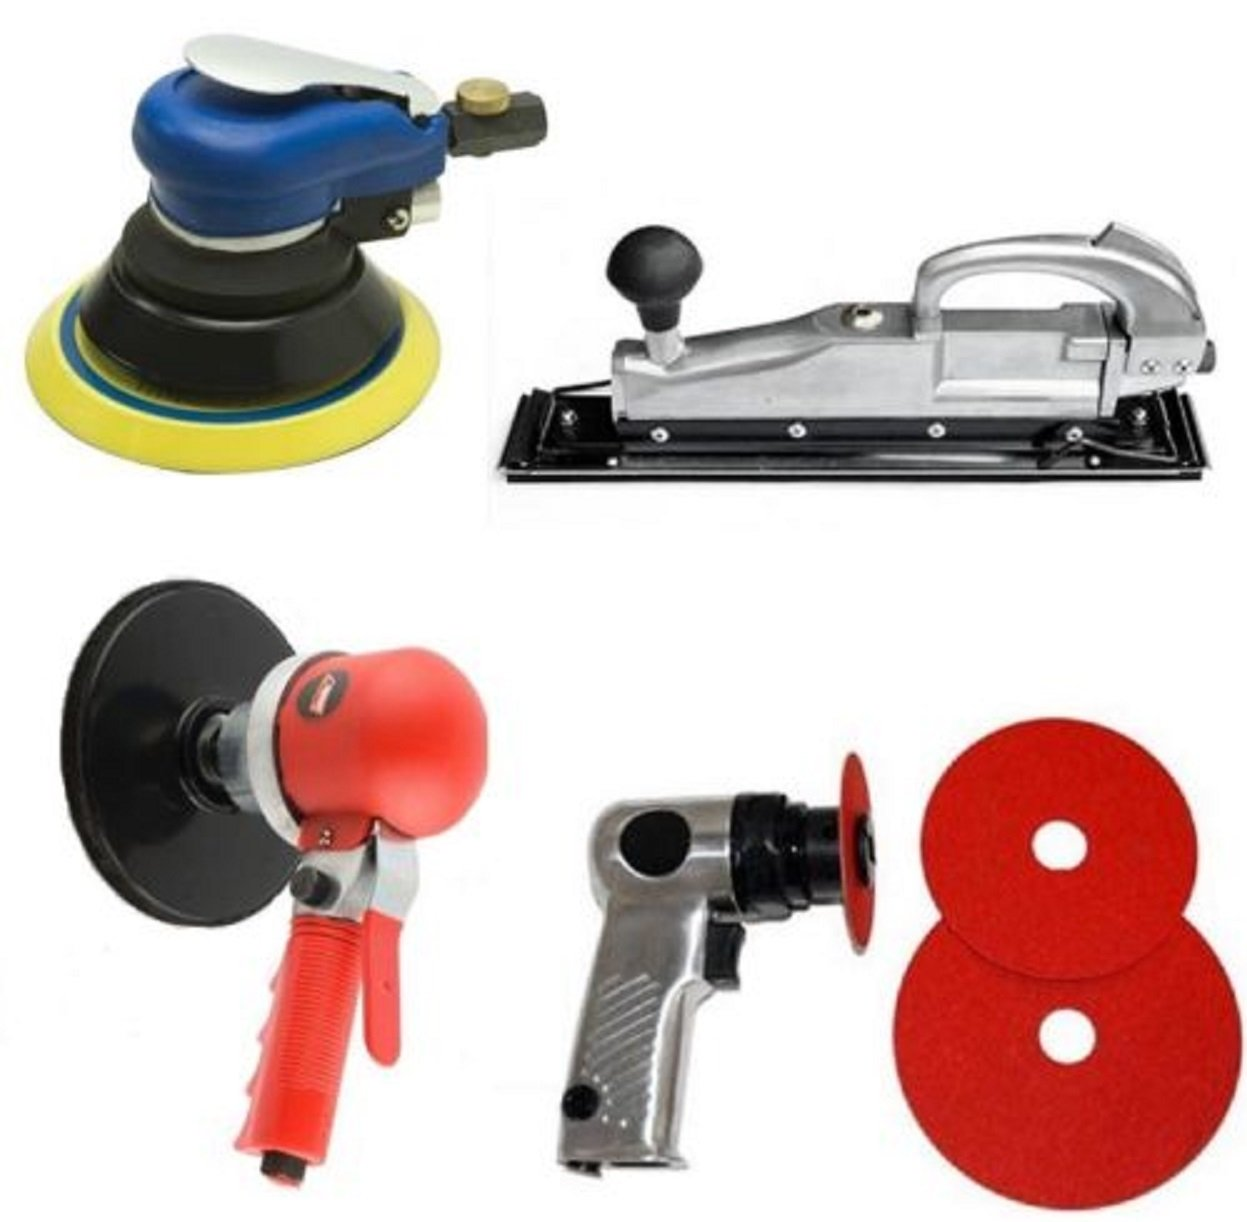 4 Pieces Air Auto Body Sander Set 6'' DA 5'' Orbital Palm 5'' High Speed Straight Line